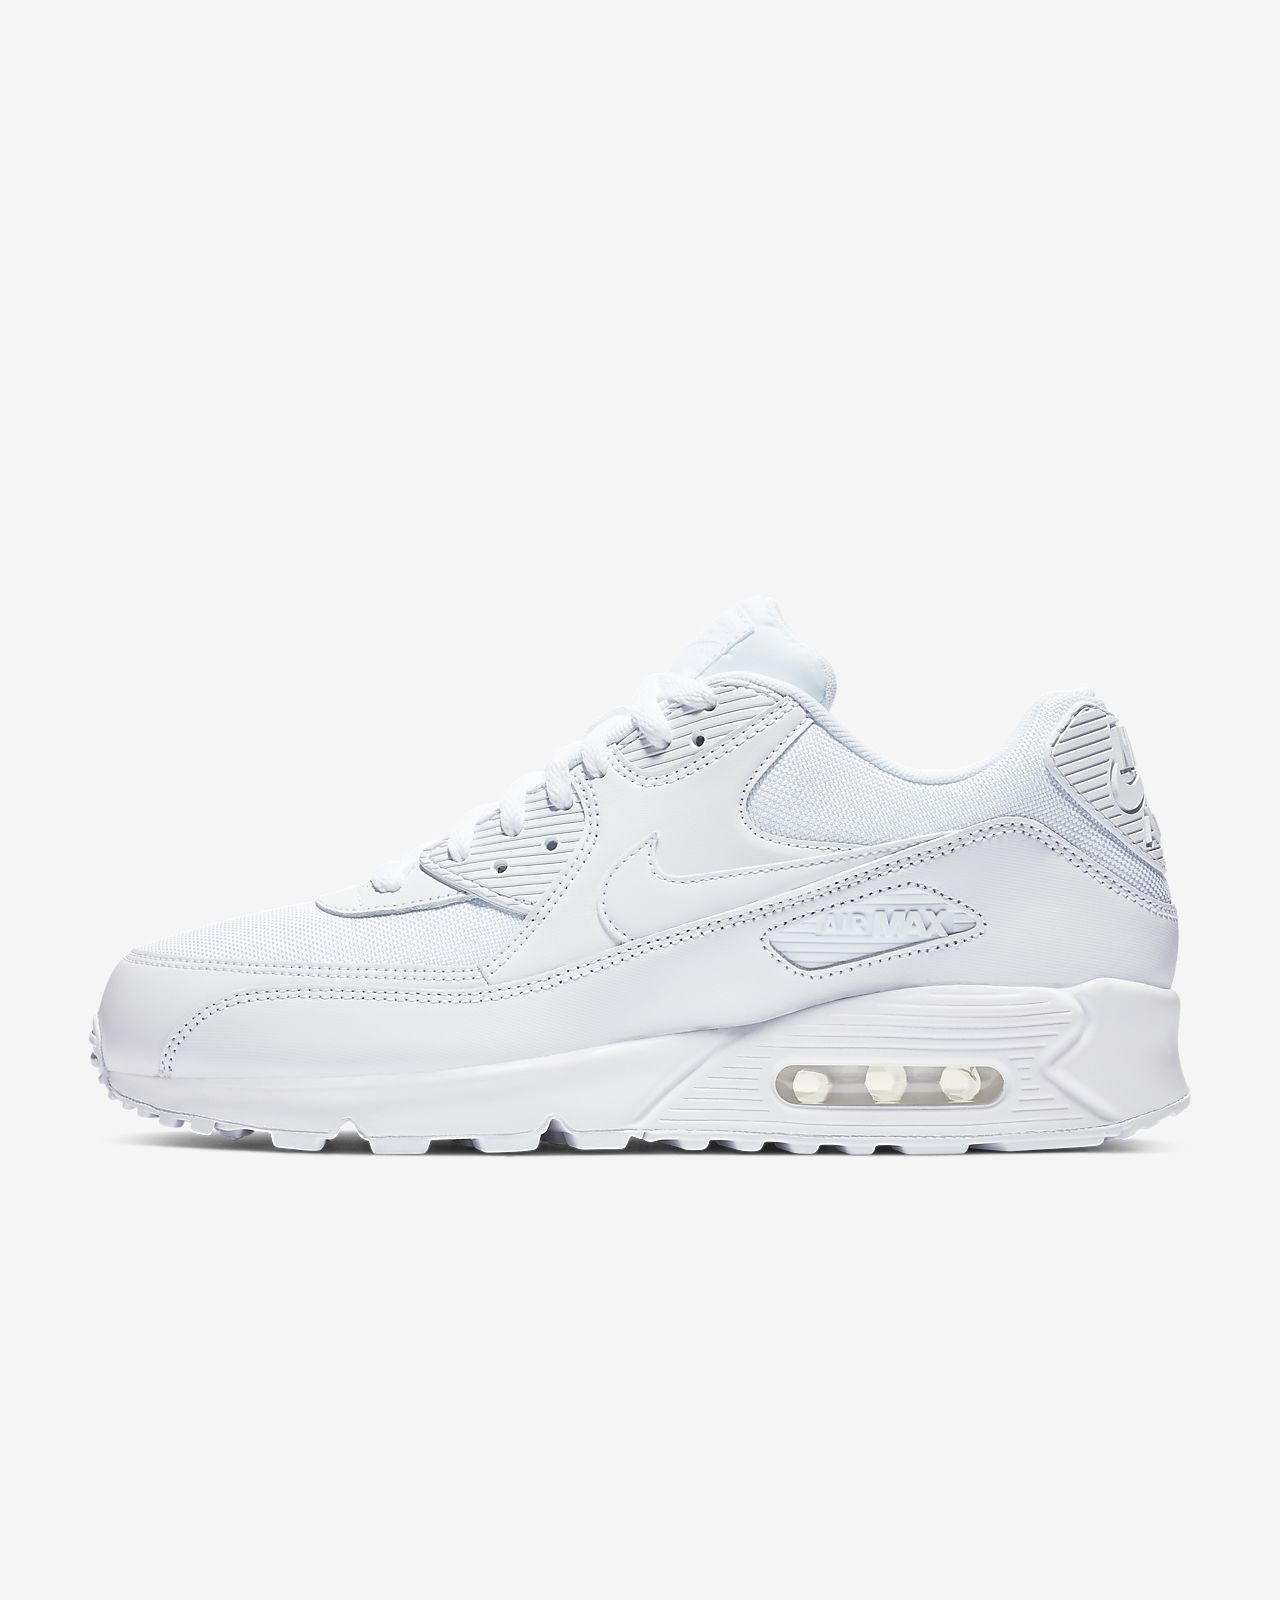 innovative design 1862c 1f0ee Mens Shoe. Nike Air Max 90 Essential